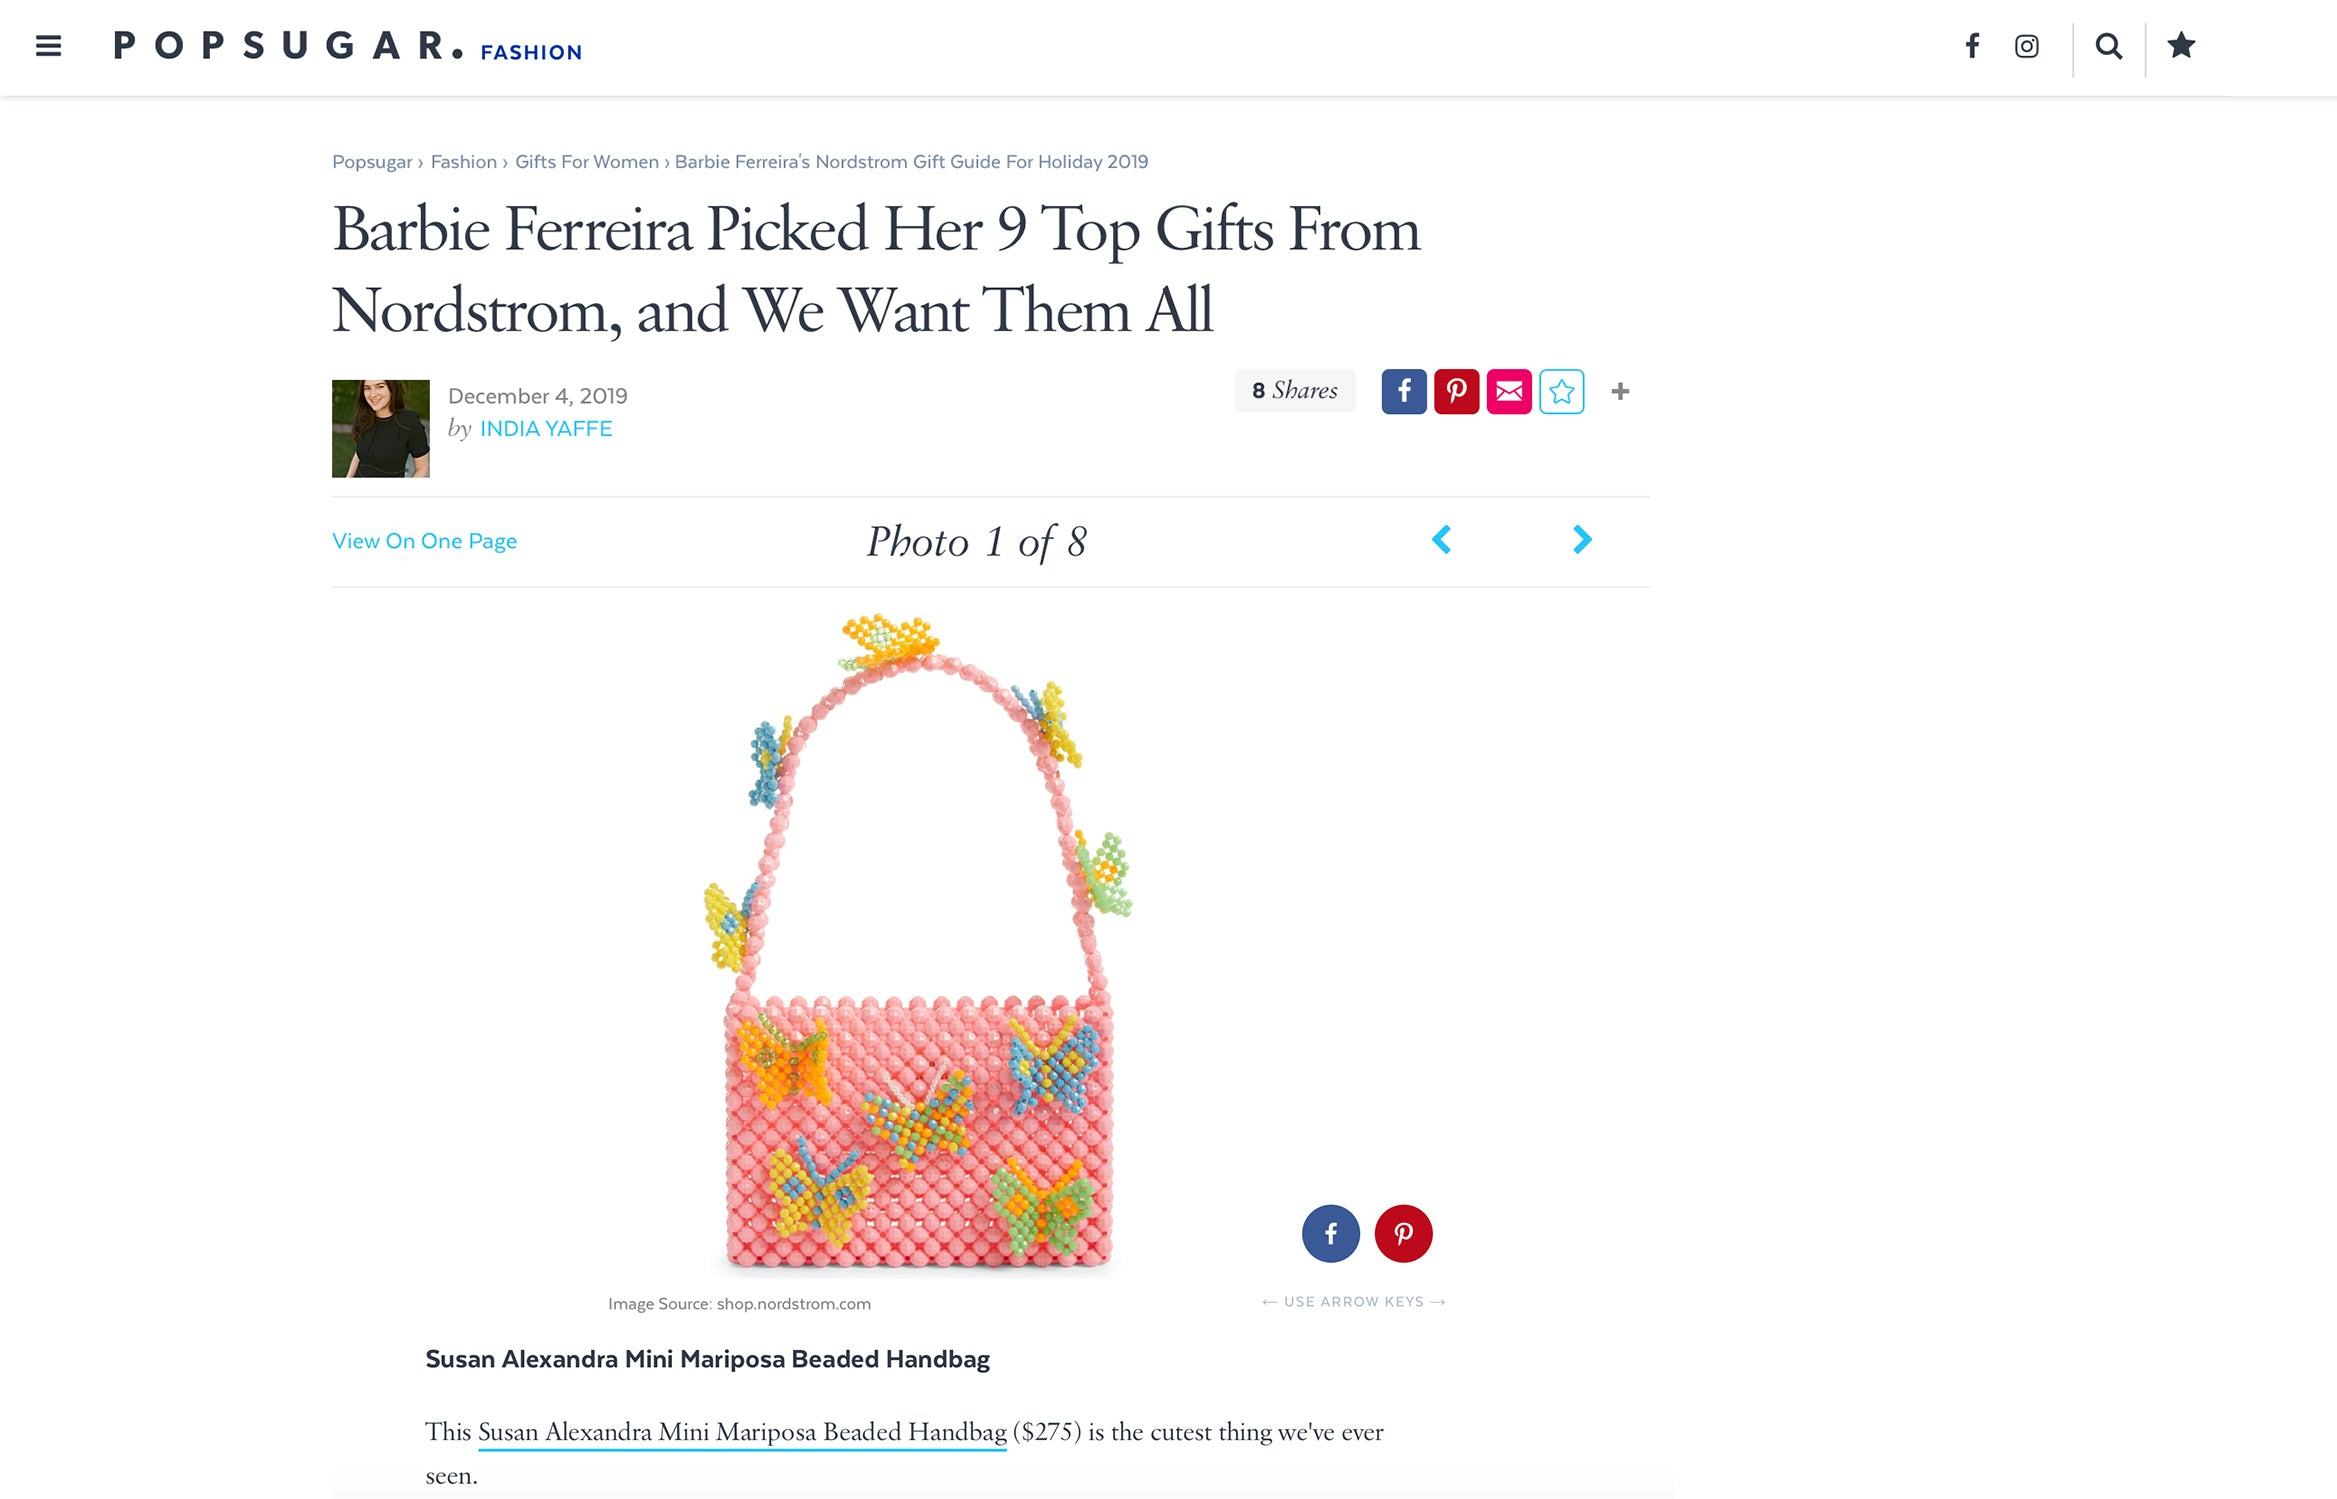 Barbie Ferreira's Gift Guide: The Mariposa Bag